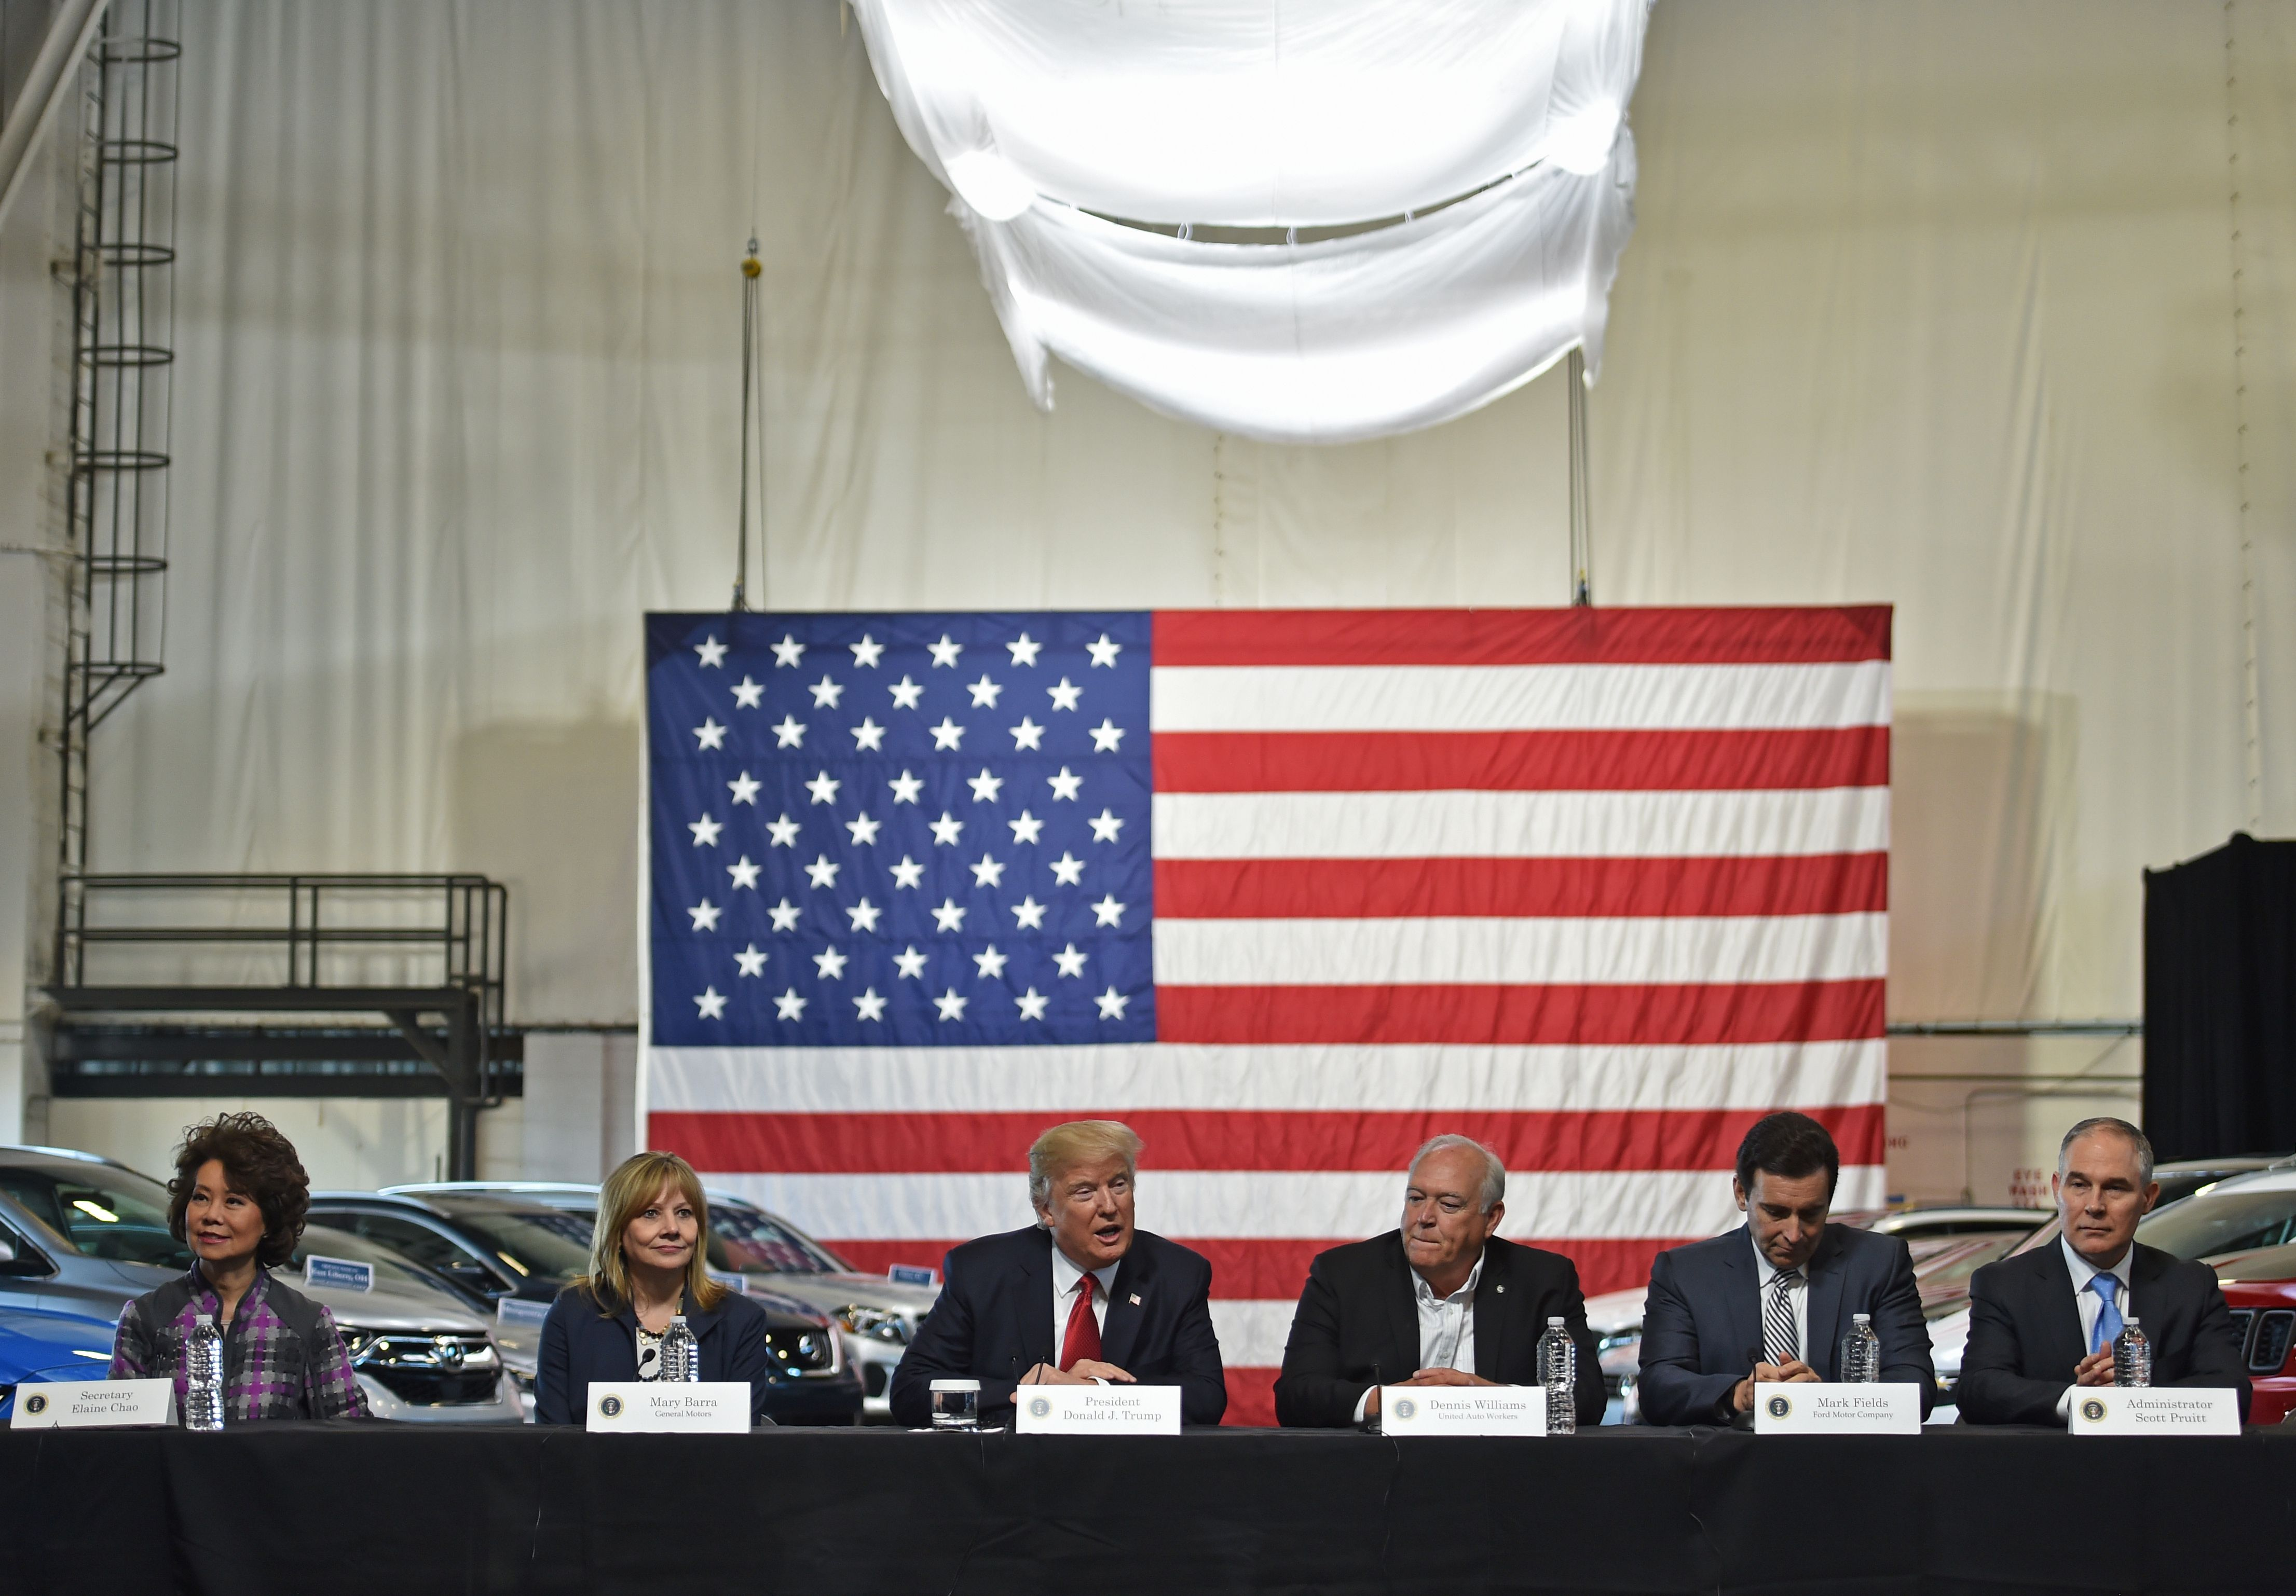 President Donald Trump delivers remarks at an auto manufacturing hub, the American Center for Mobility in Michigan on March 15